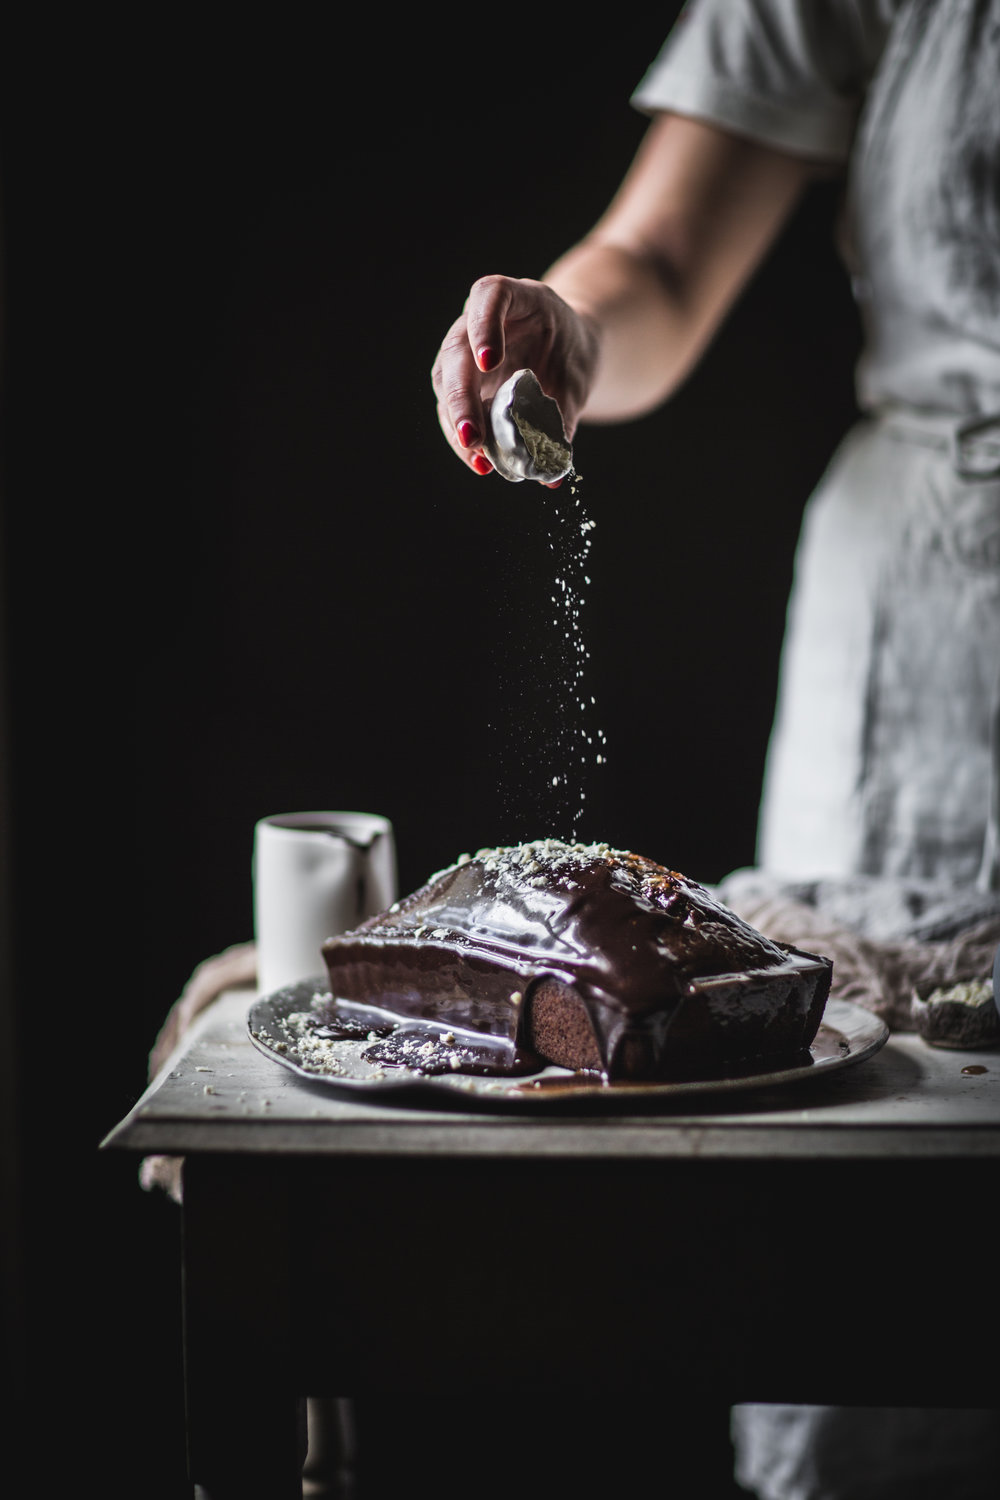 Food Photography and Styling Online Course